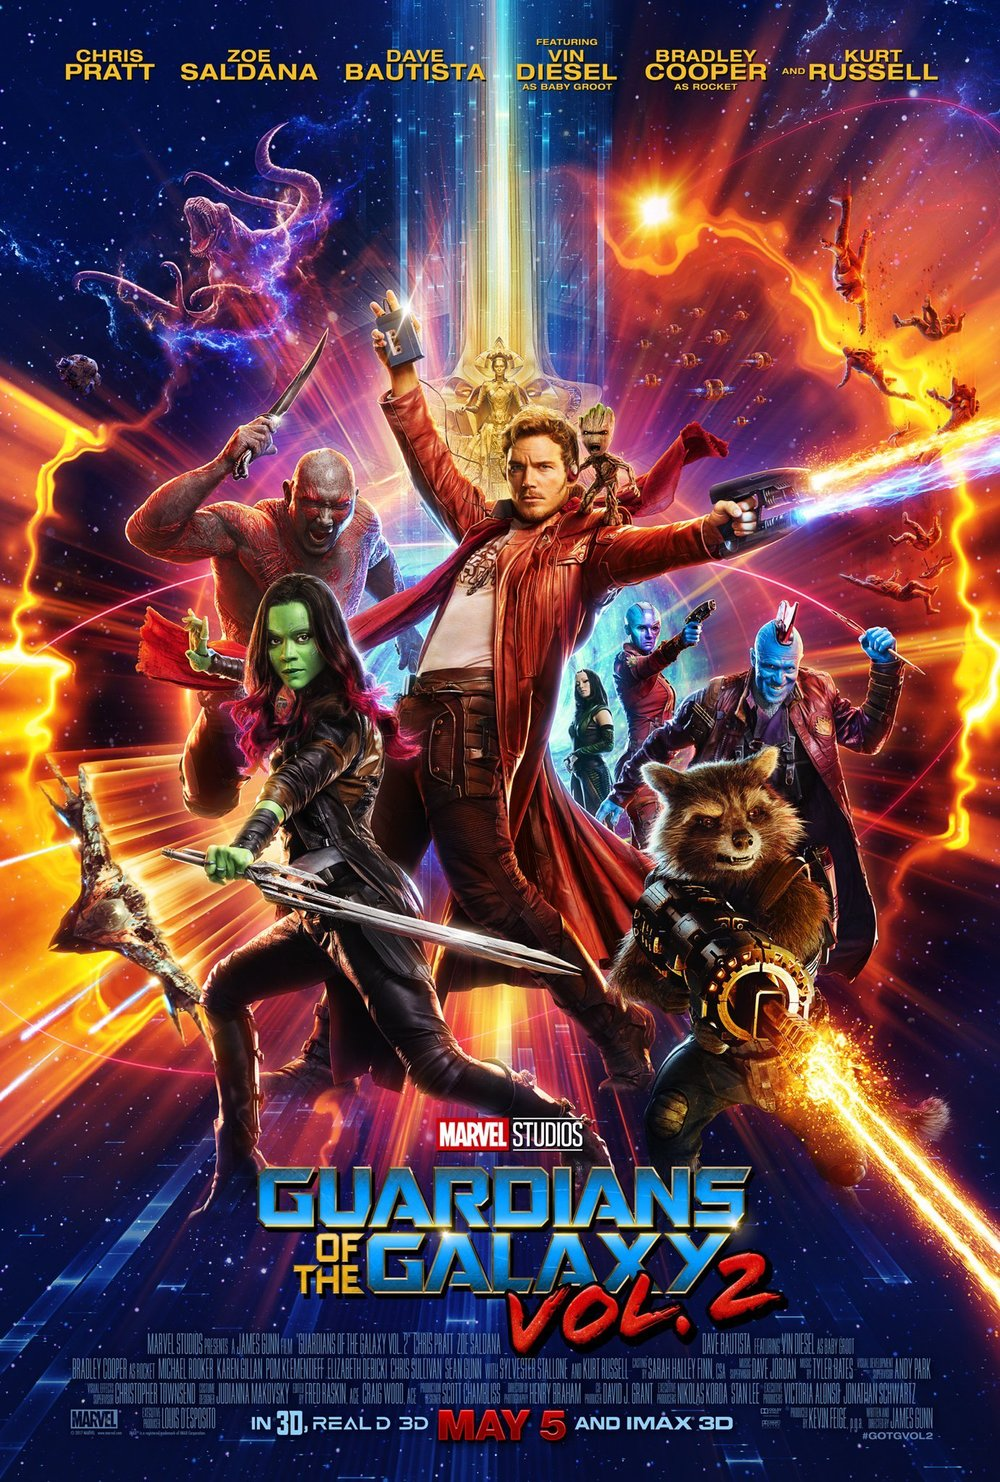 Guardians of the Galaxy Vol. 2 - Legacy Effects On-Set Coordinator